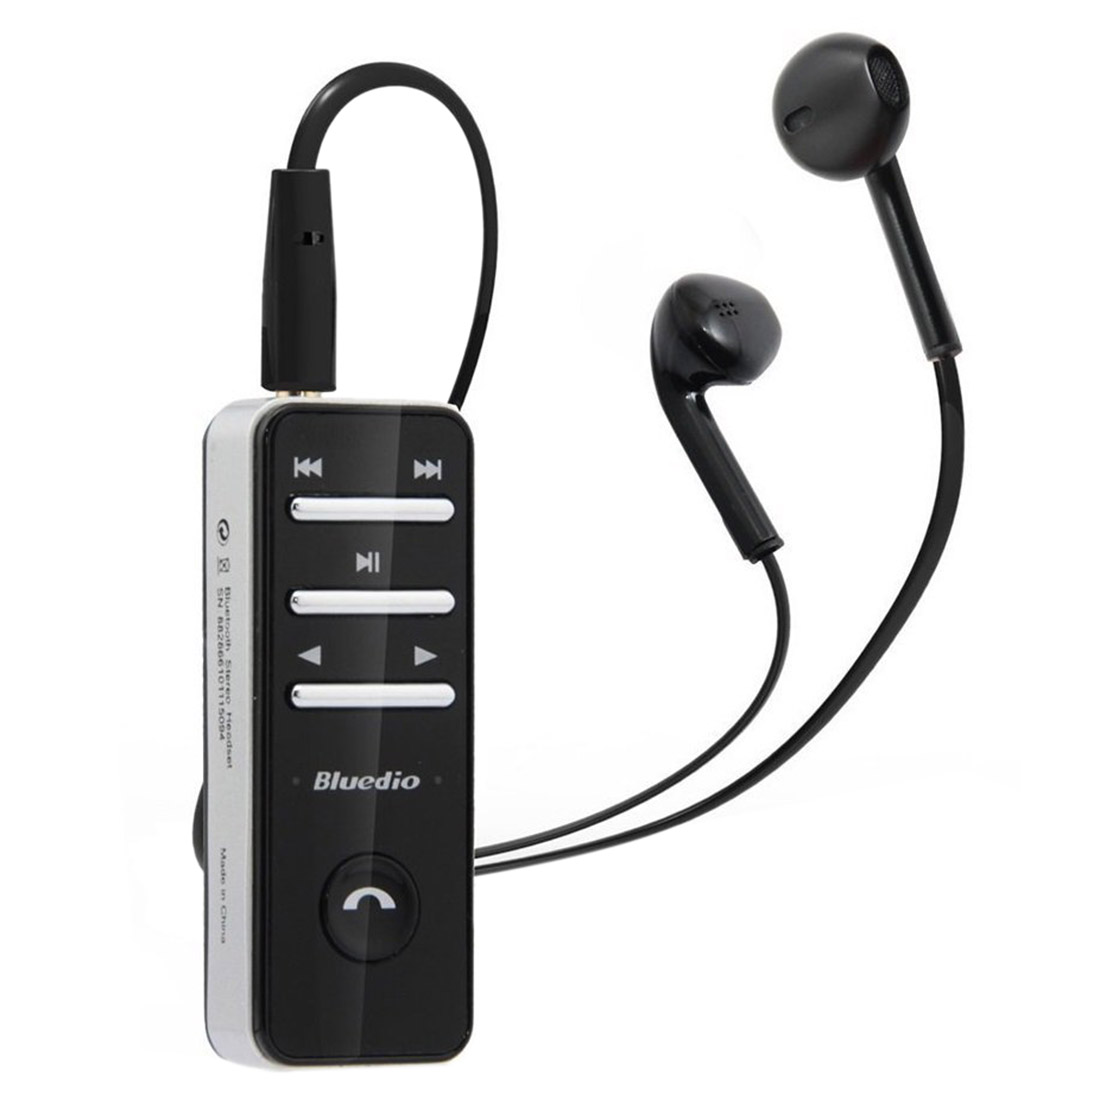 Bluedio i4 Universal Bluetooth v3.0 stereo in-ear Headphone for iPhone Samsung Android